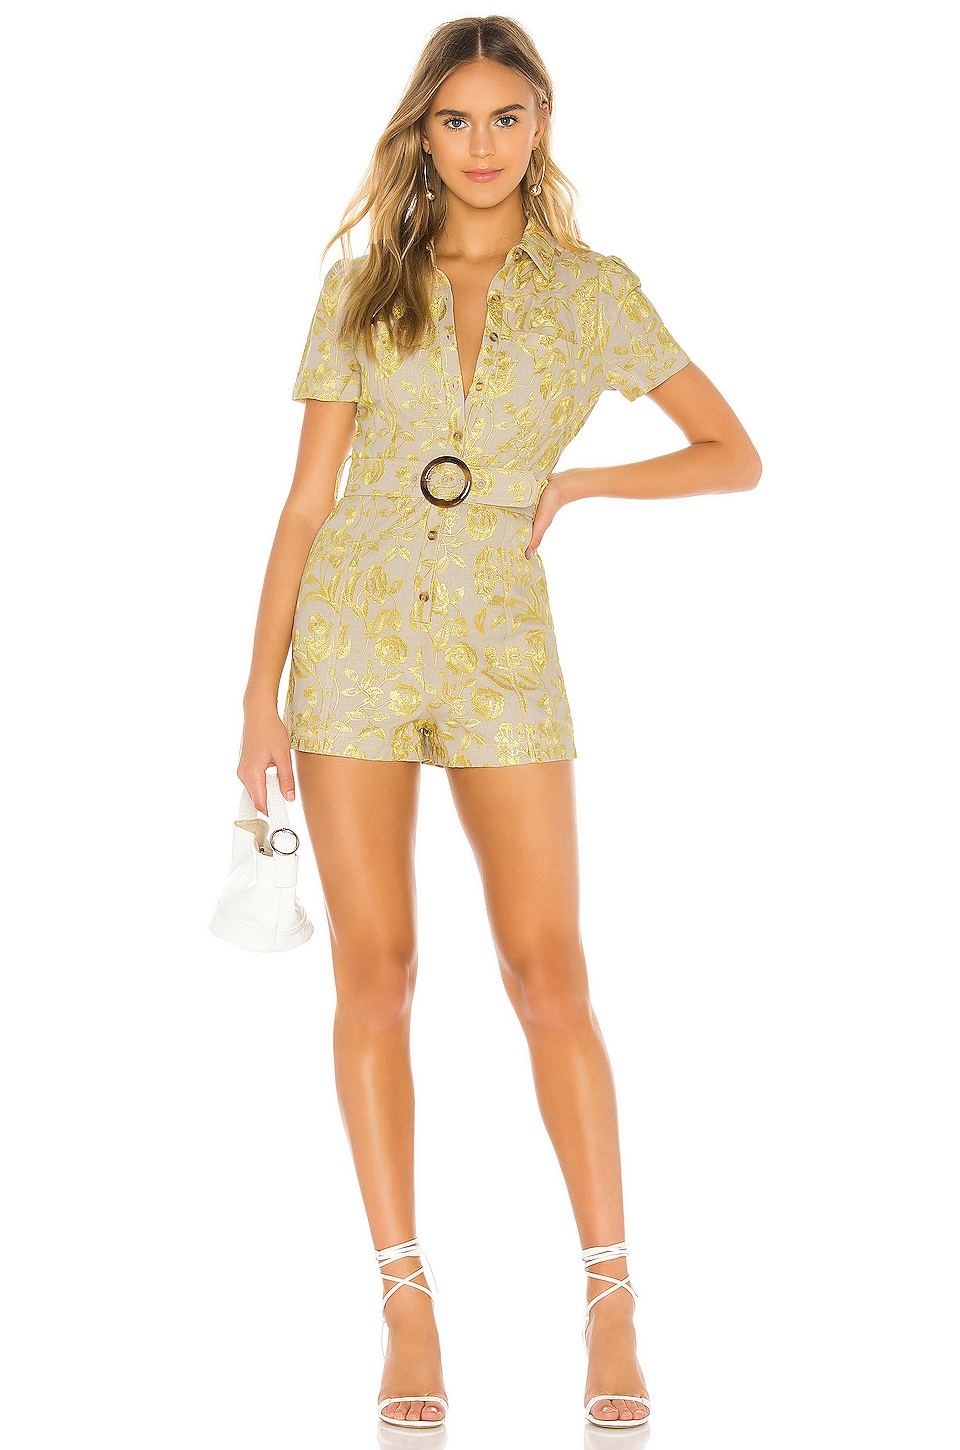 Tularosa Teri Embroidered Romper in Yellow Floral